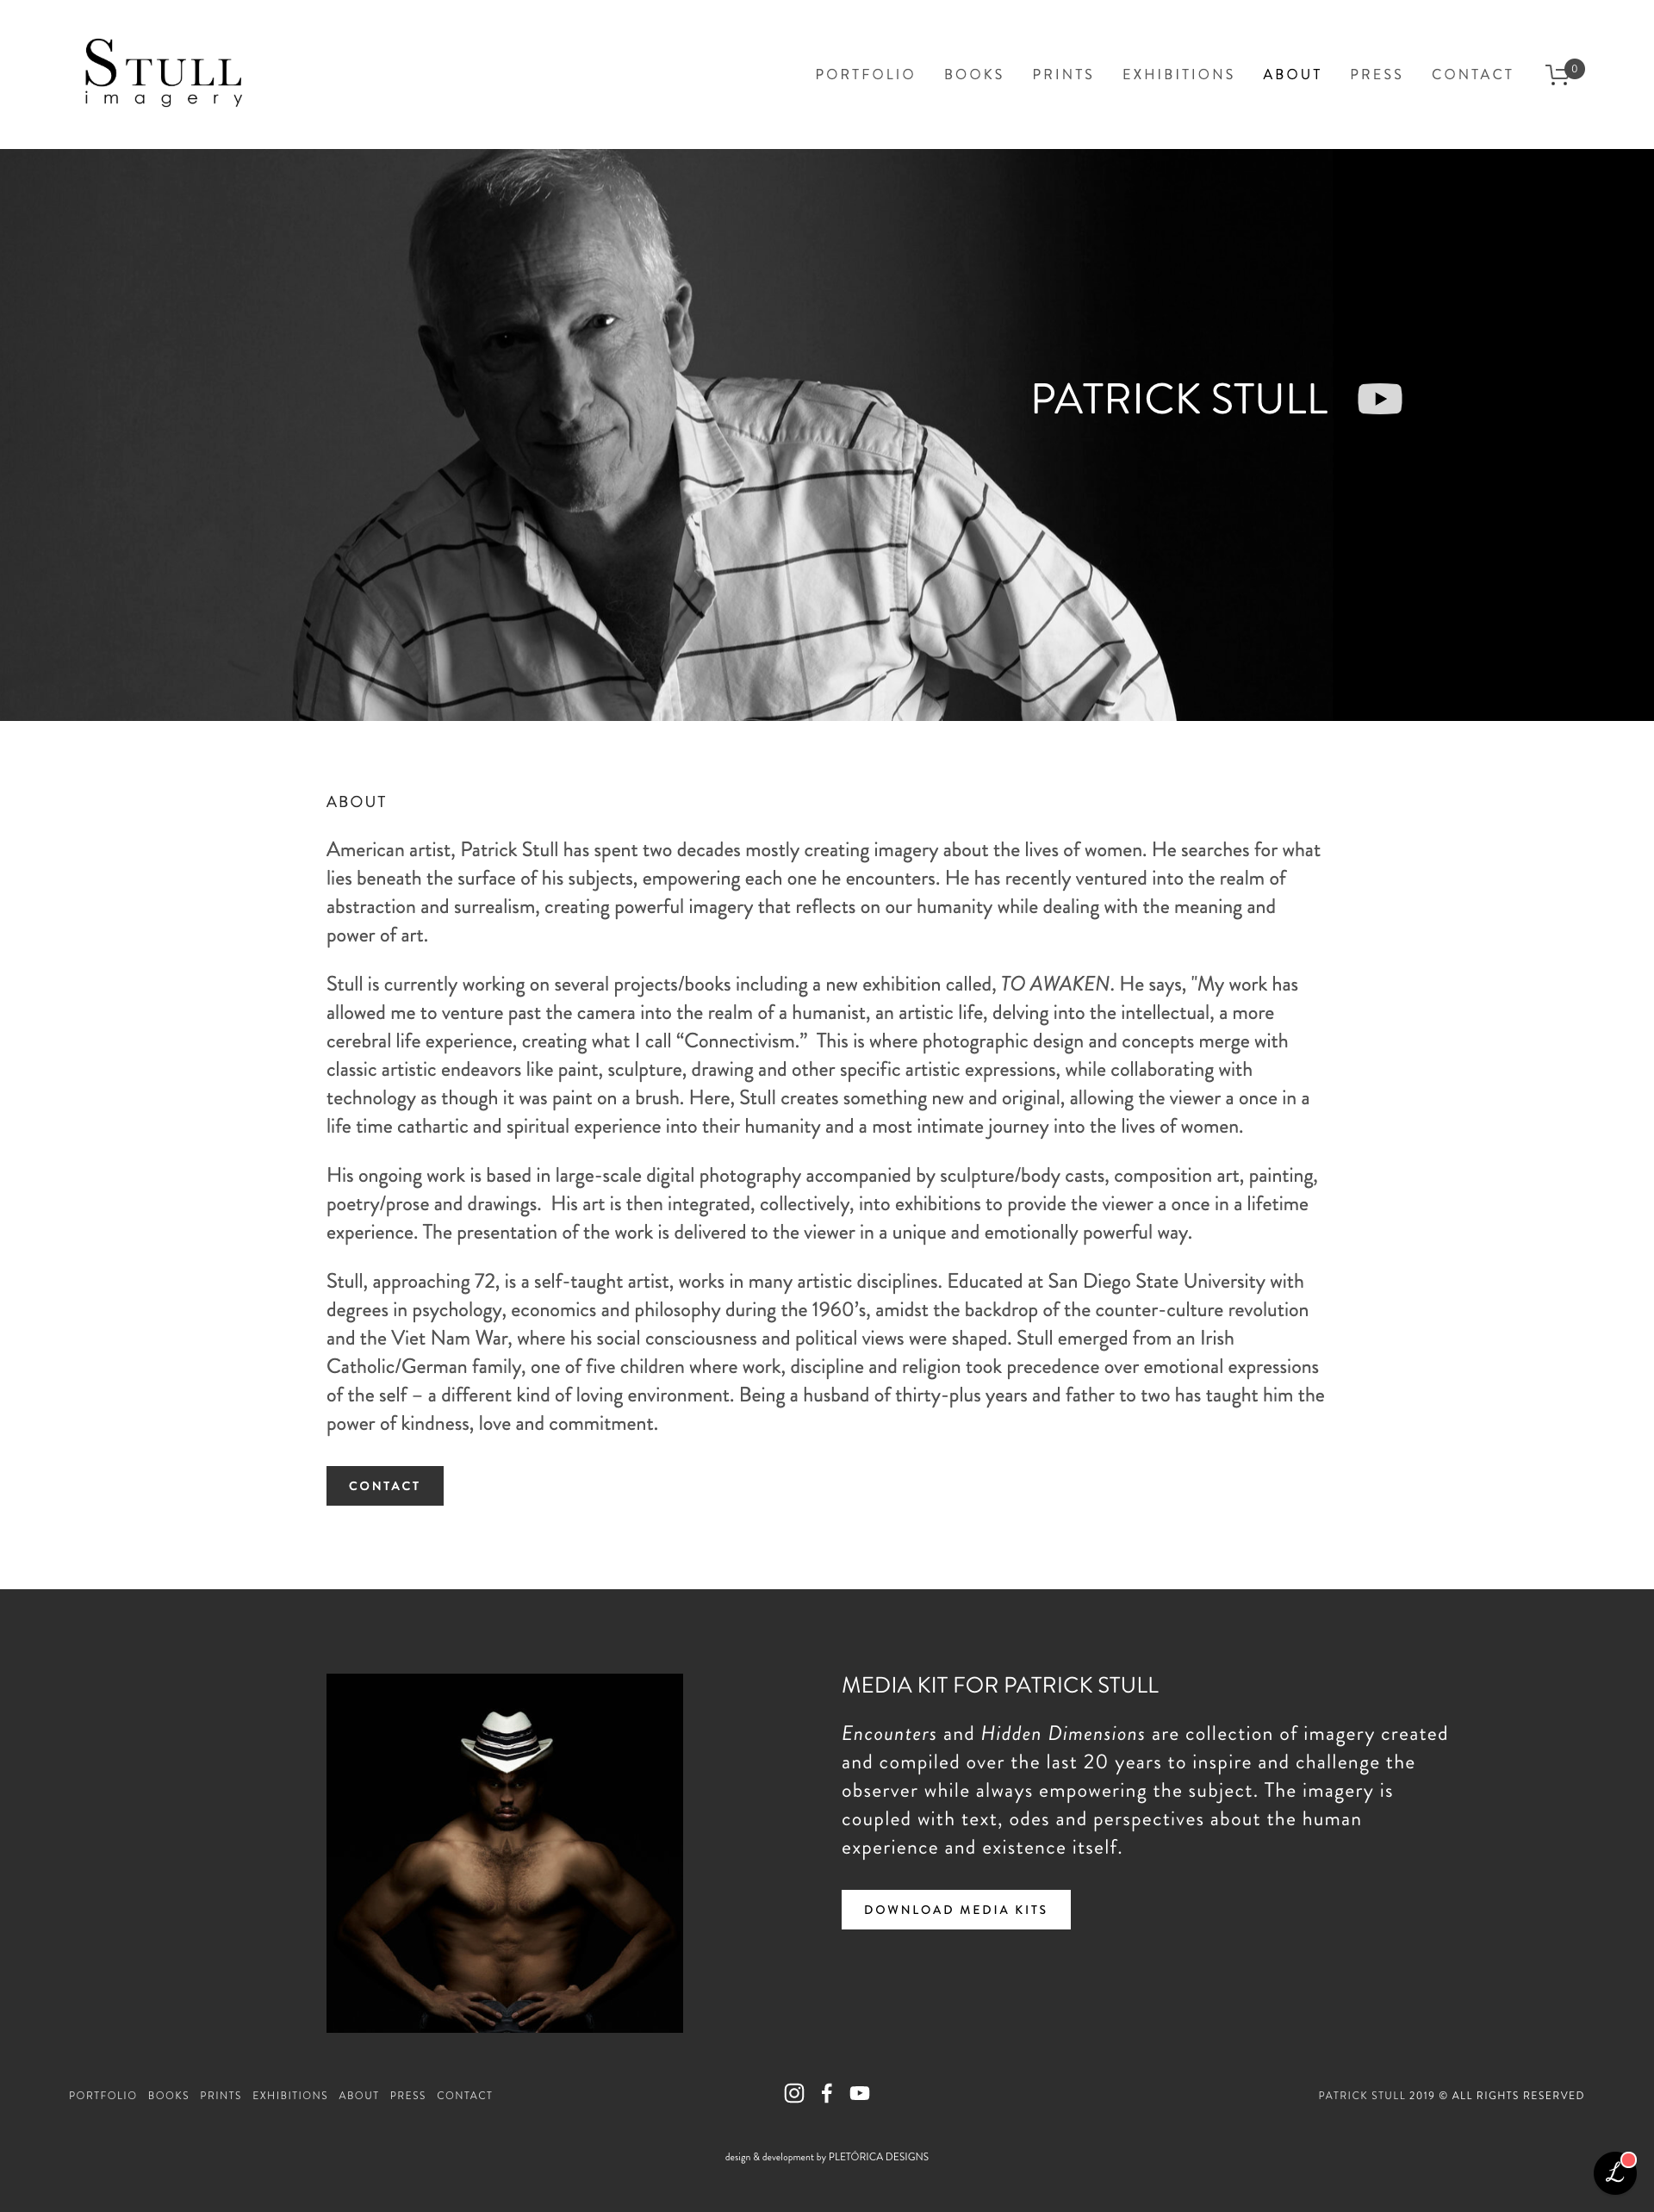 About new— Patrick Stull Imagery.png